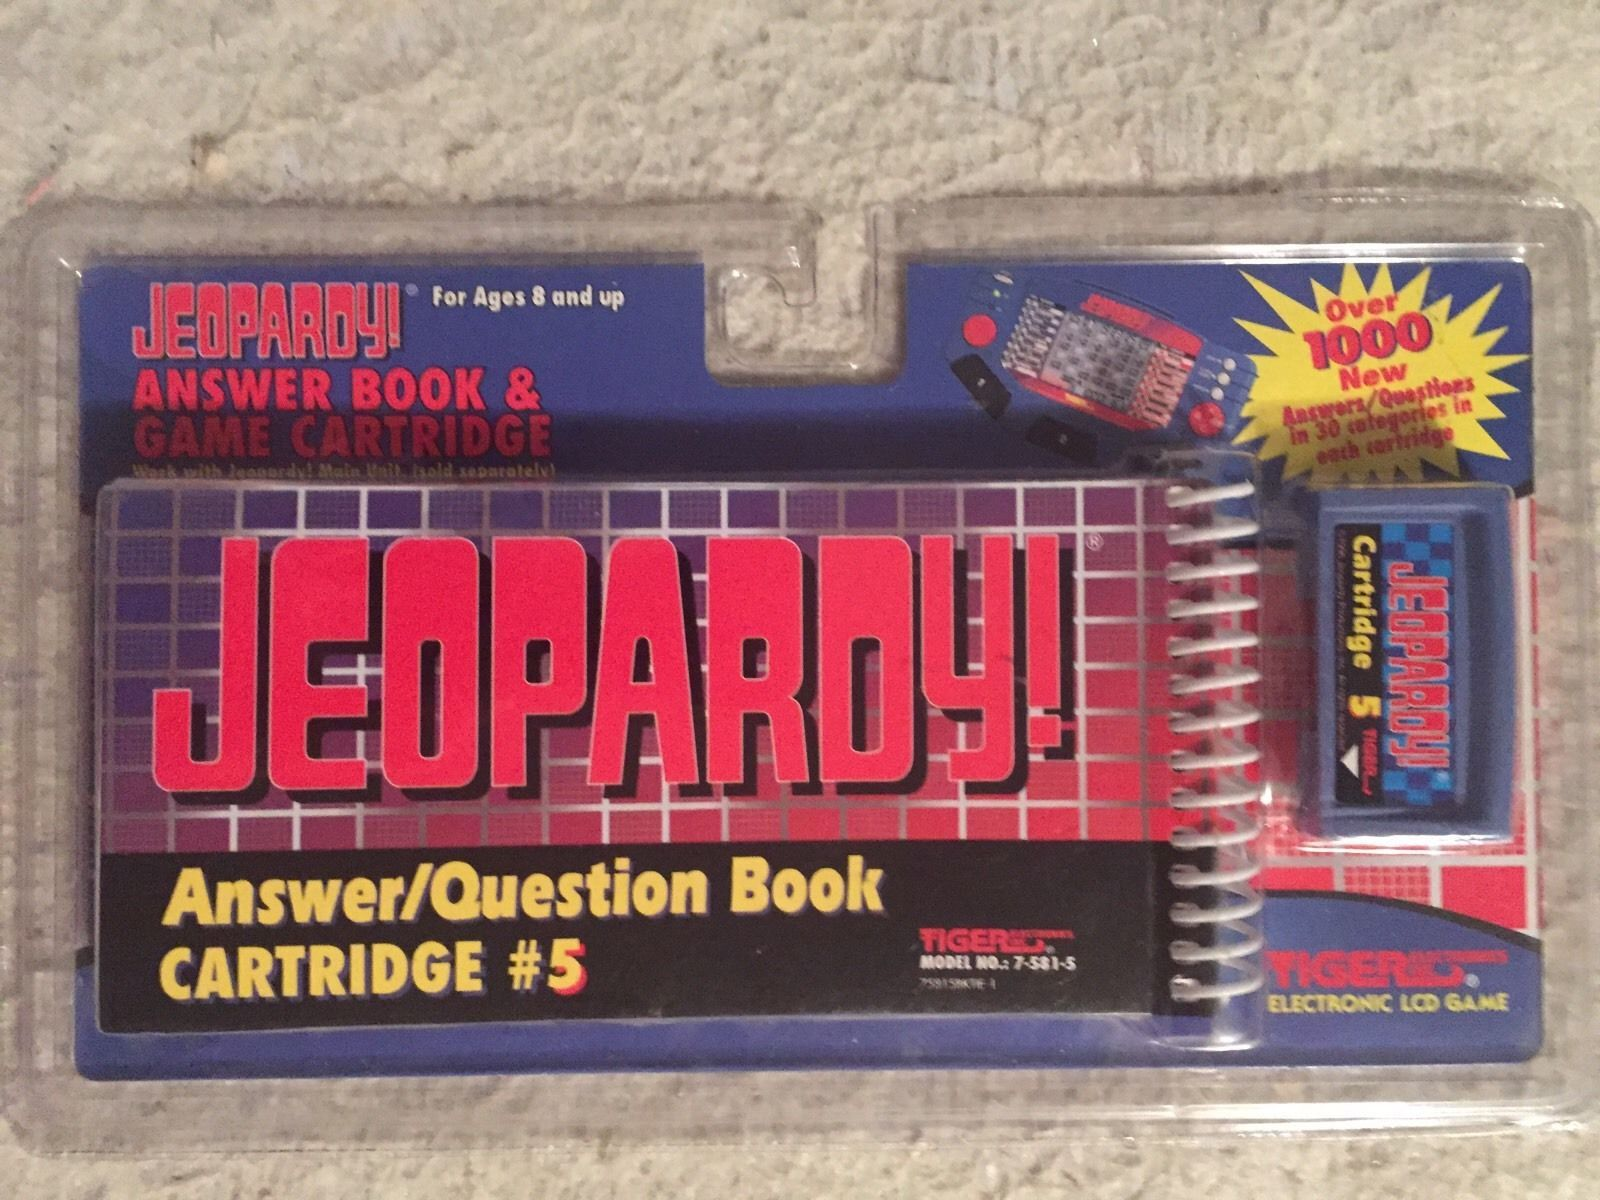 Primary image for JEOPARDY ANSWER BOOK & GAME CARTRIDGE #4 (1995, TIGER ELECTRONICS) NEW